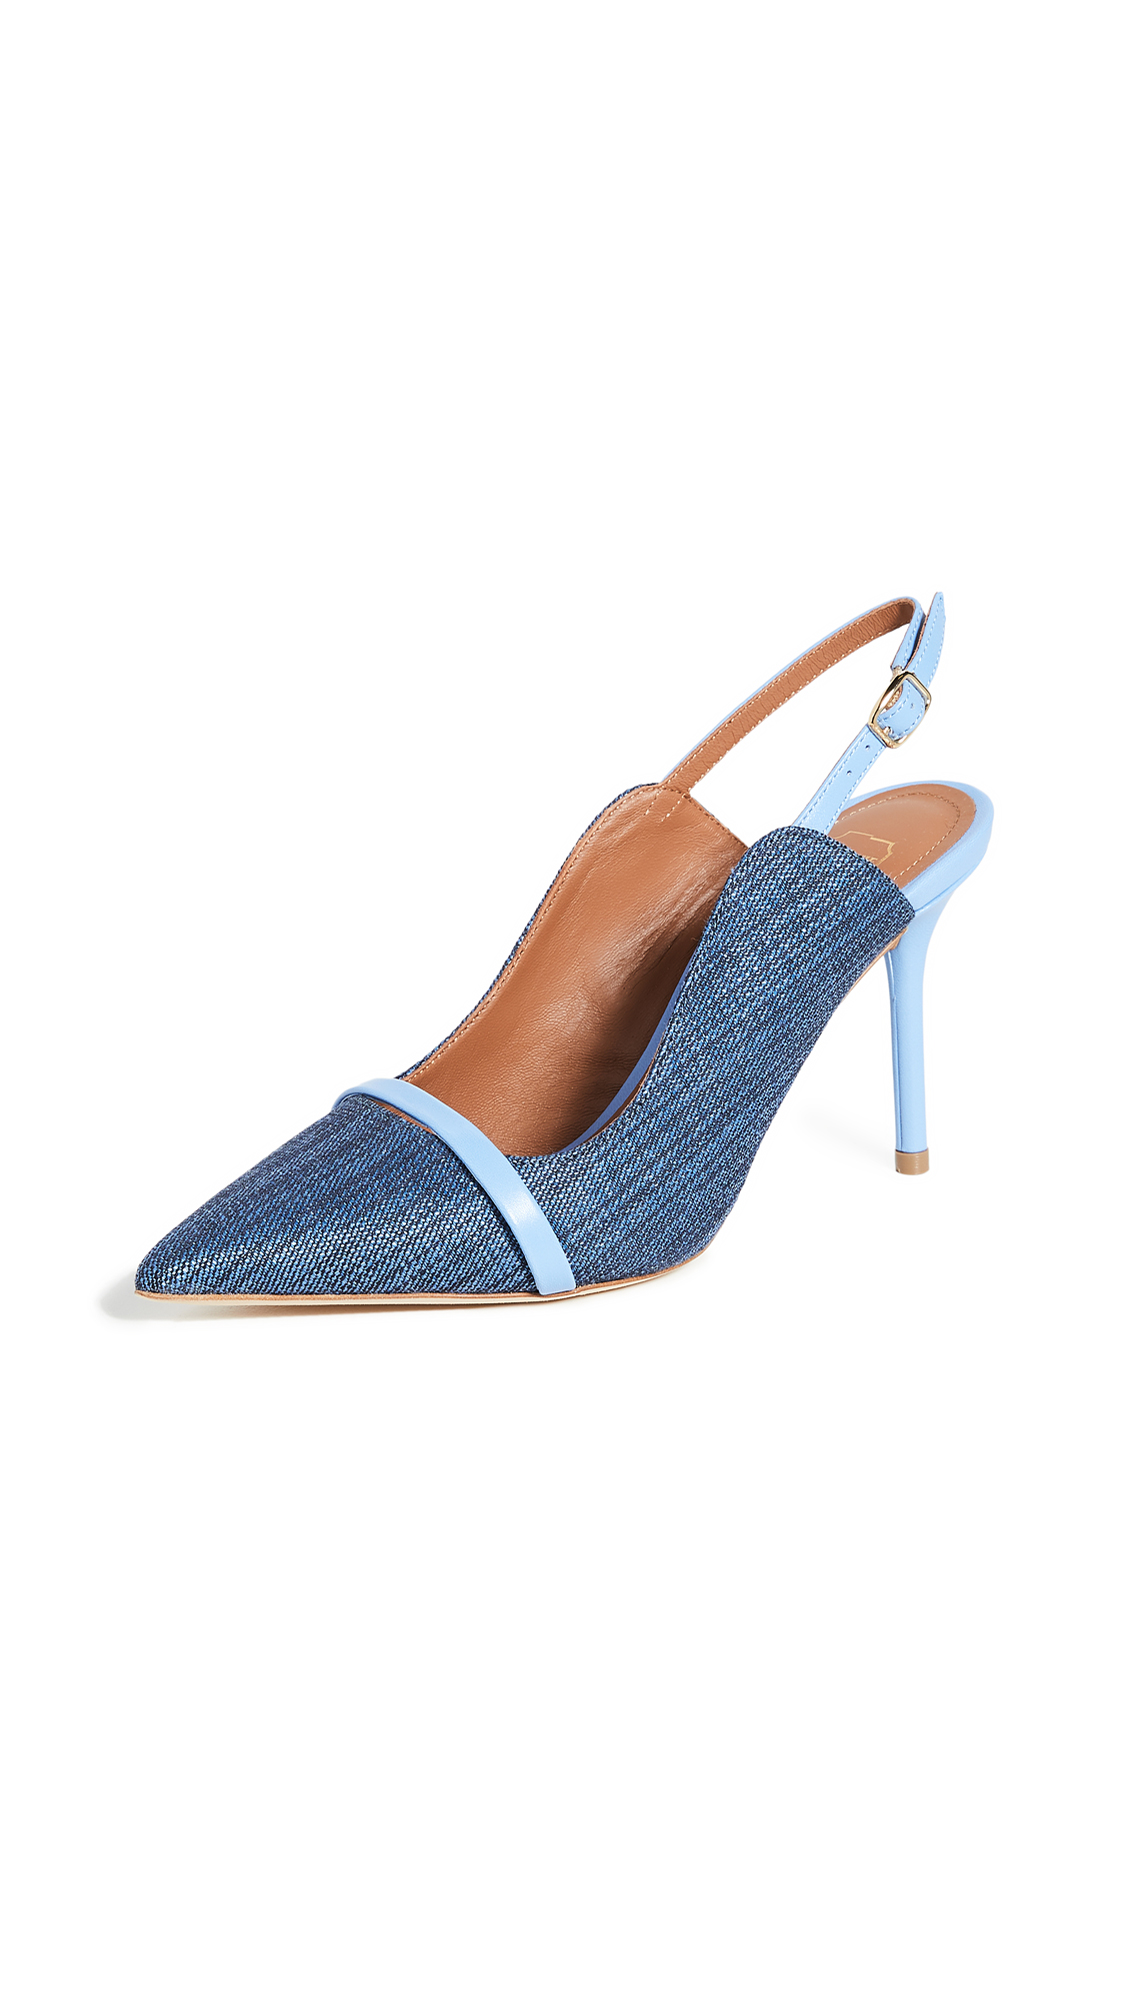 Buy Malone Souliers 85mm Marion Slingback Pumps online, shop Malone Souliers